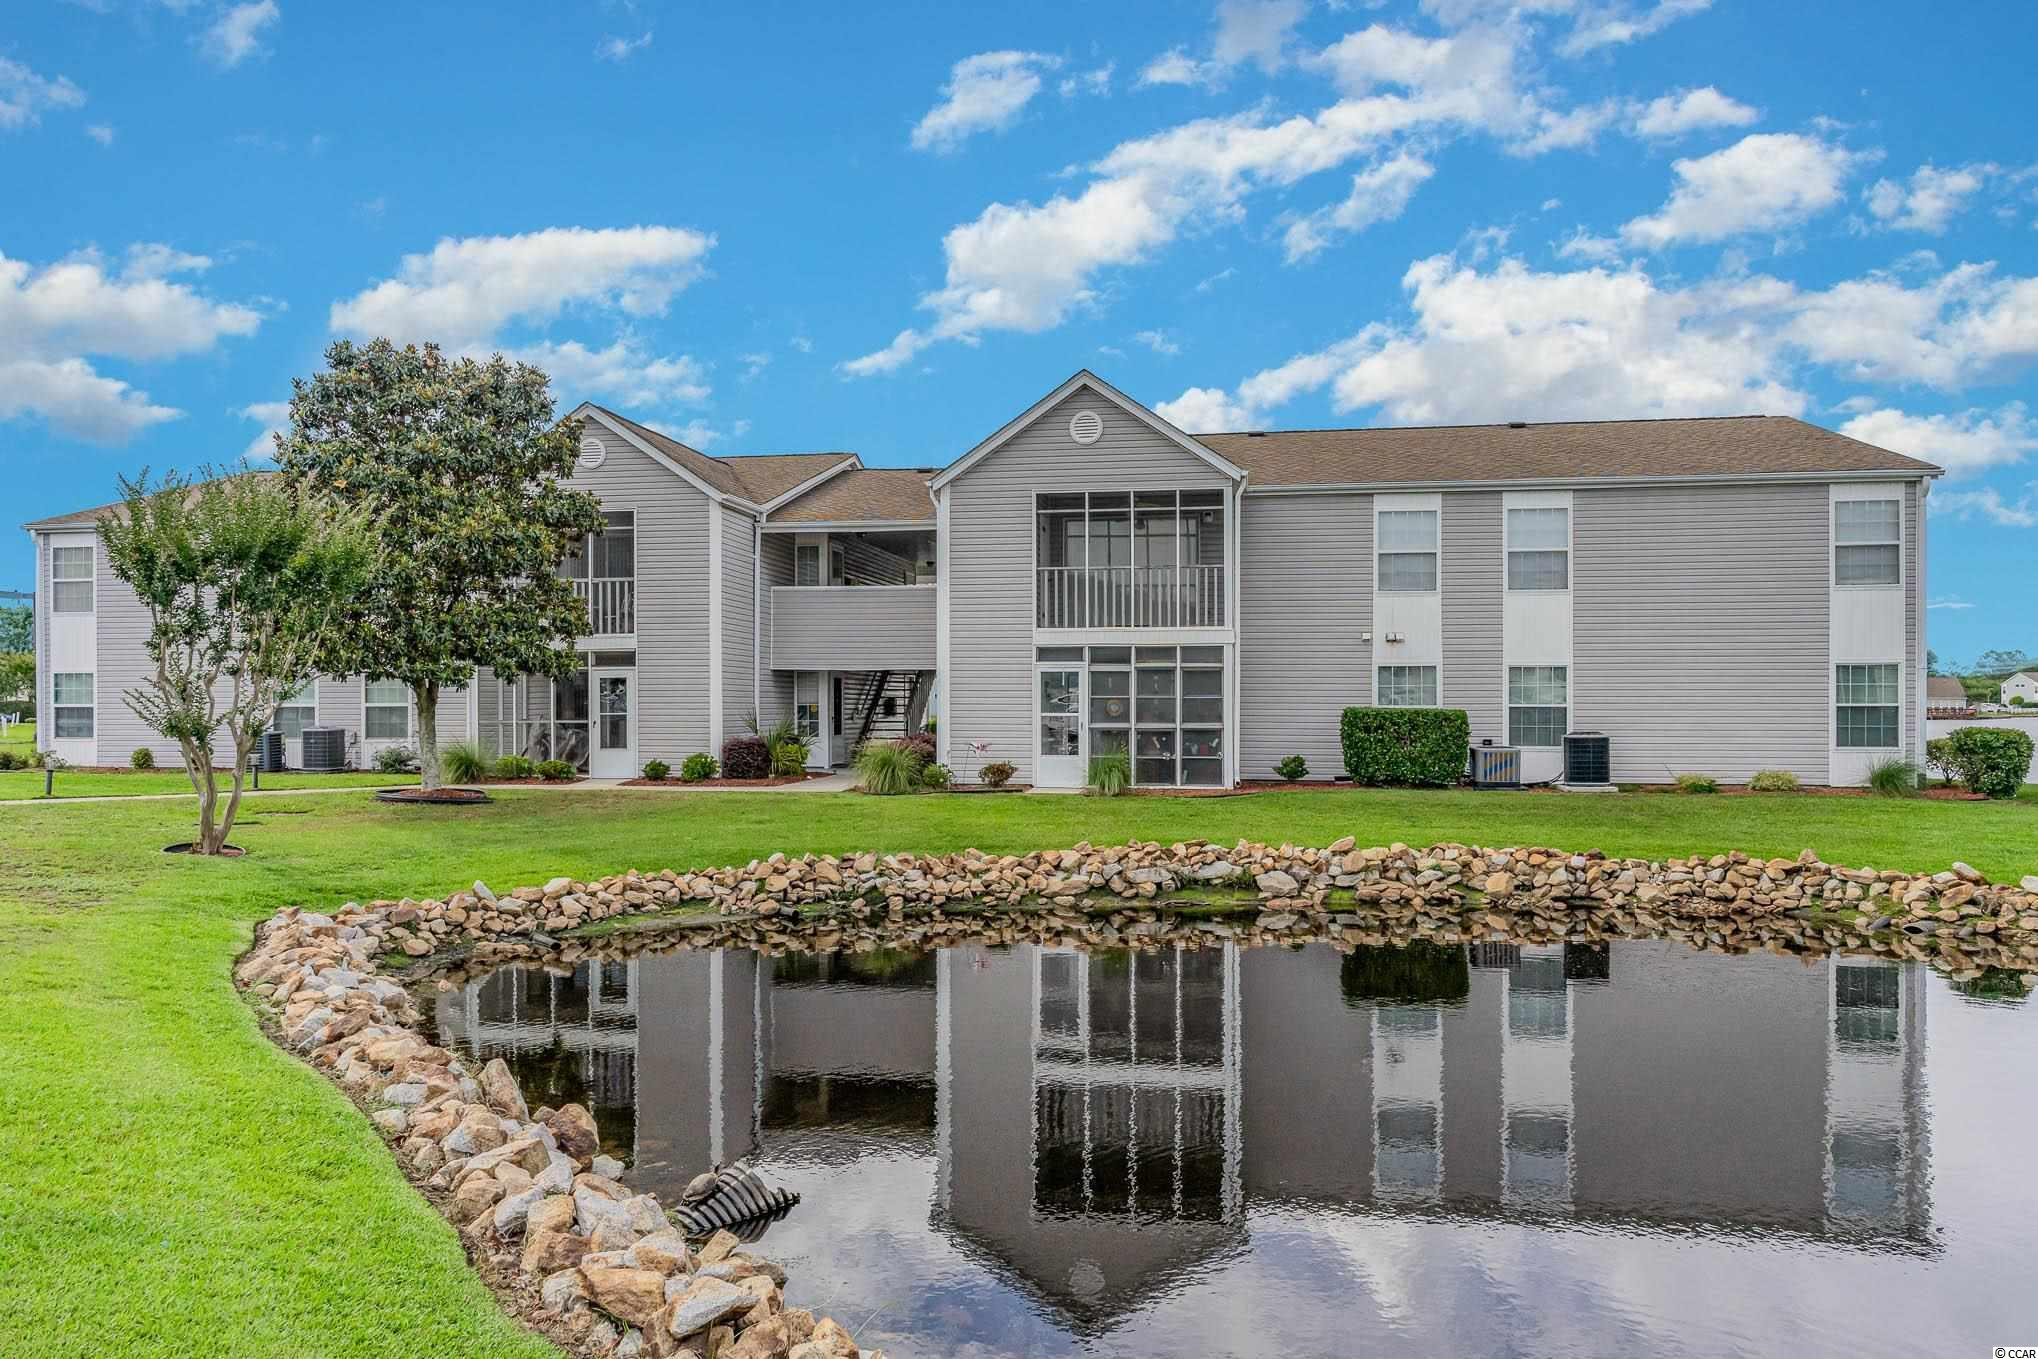 Surfside Beach rare 3 bedroom condo with 2 full bath. Community pool included at South Bay Lakes. Very short drive to the ocean with easy public parking available at the beach. Call now before this property is sold with questions or to schedule a showing.